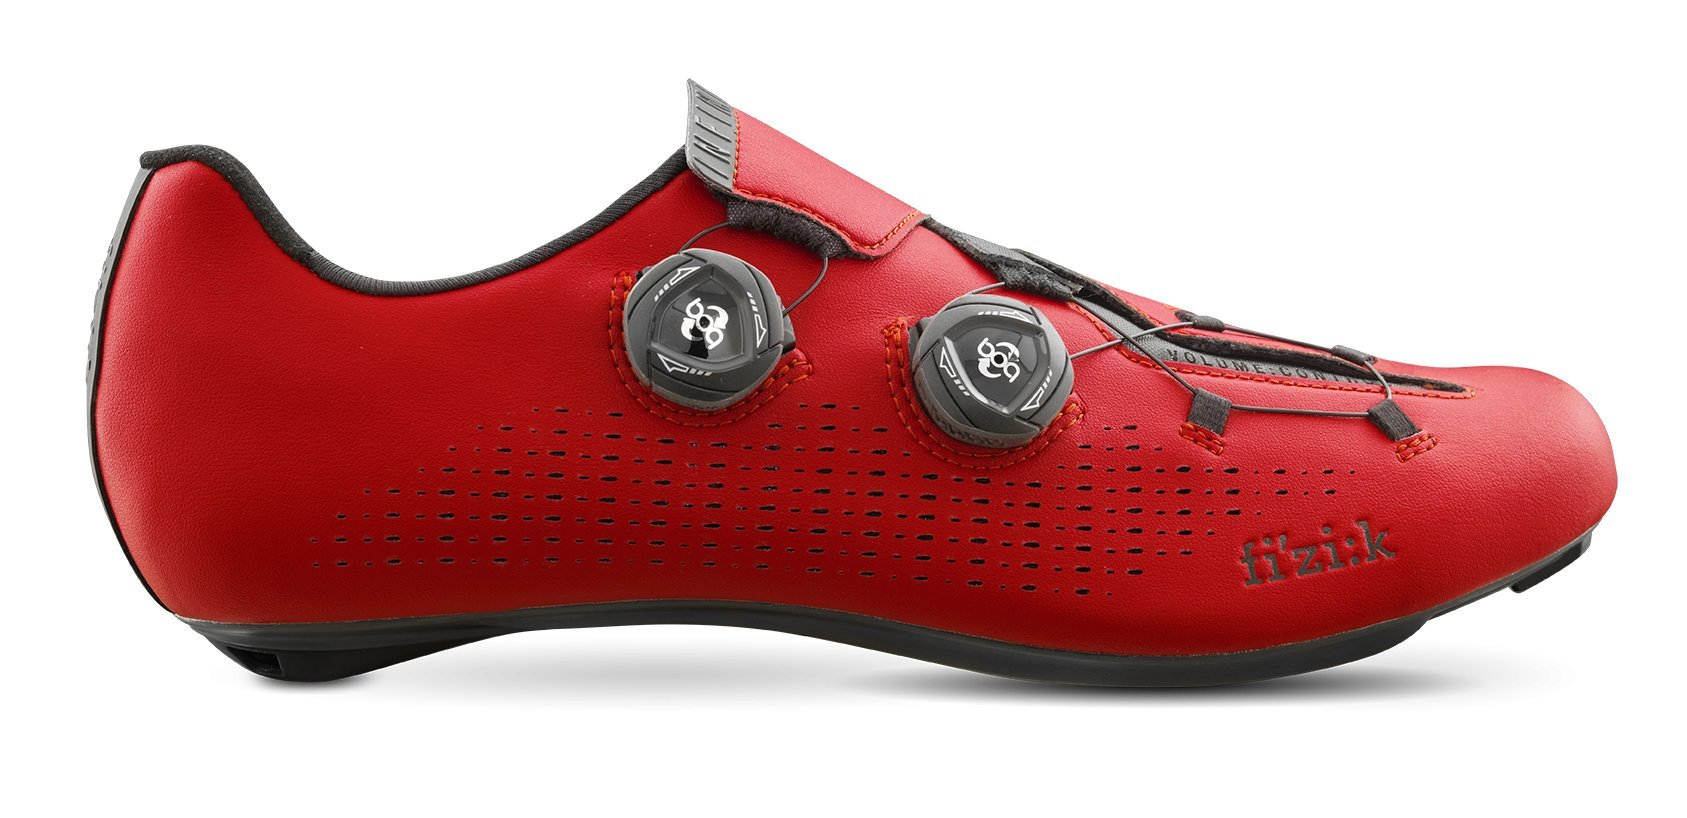 Fizik R1 INFINITO Shoes, Red/Black, Size 37